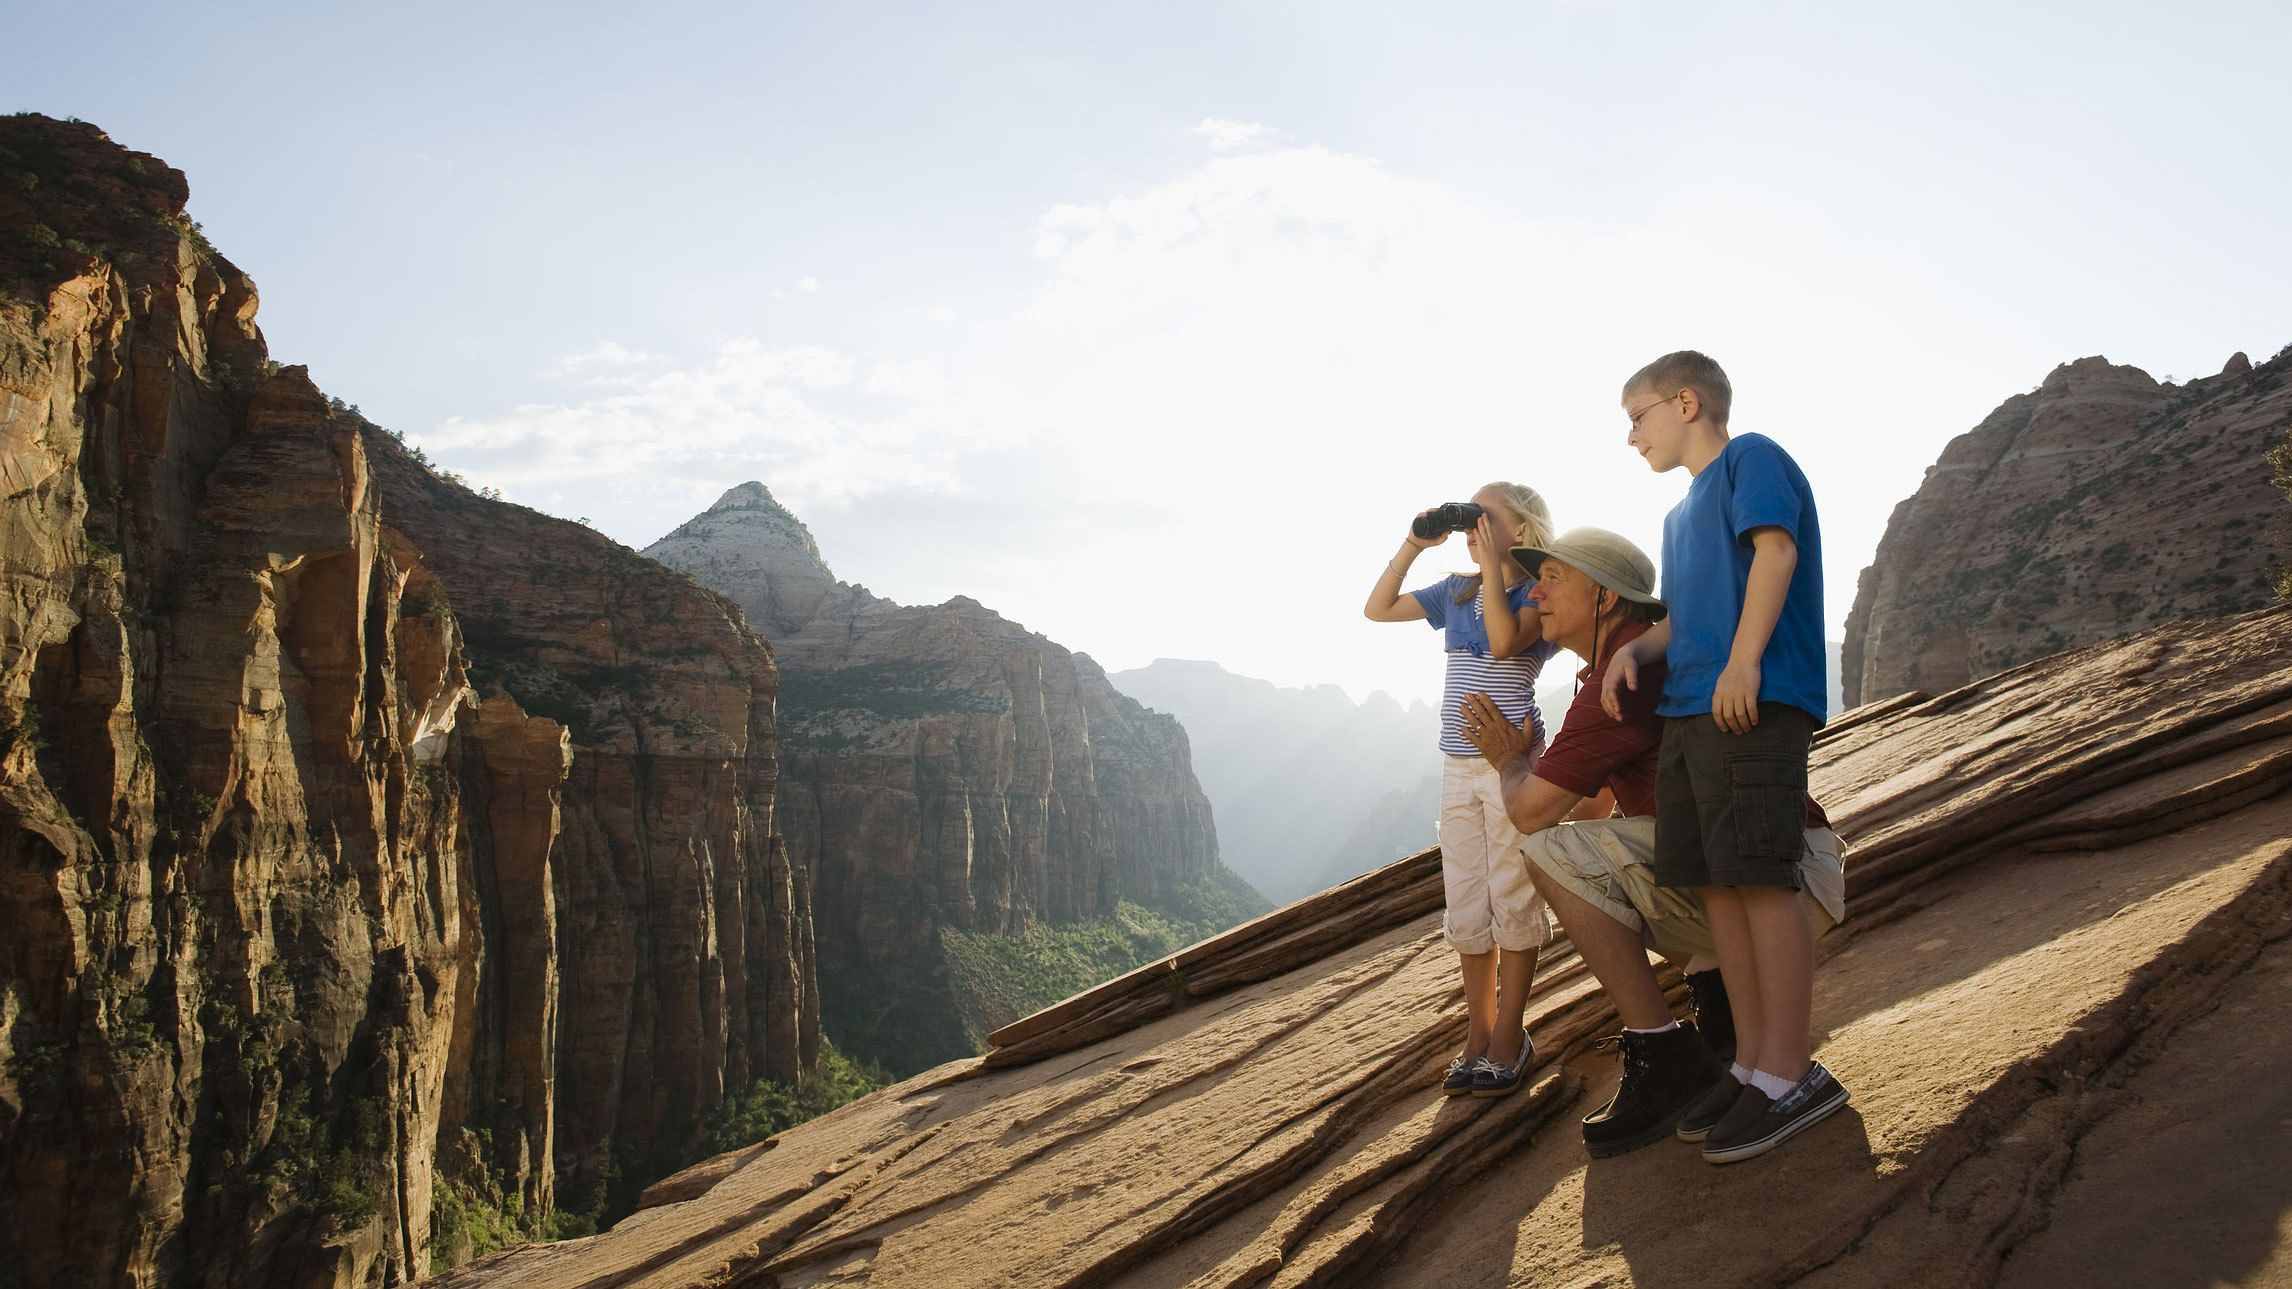 Father with his young son and daughter enjoying the views within Zion National Park